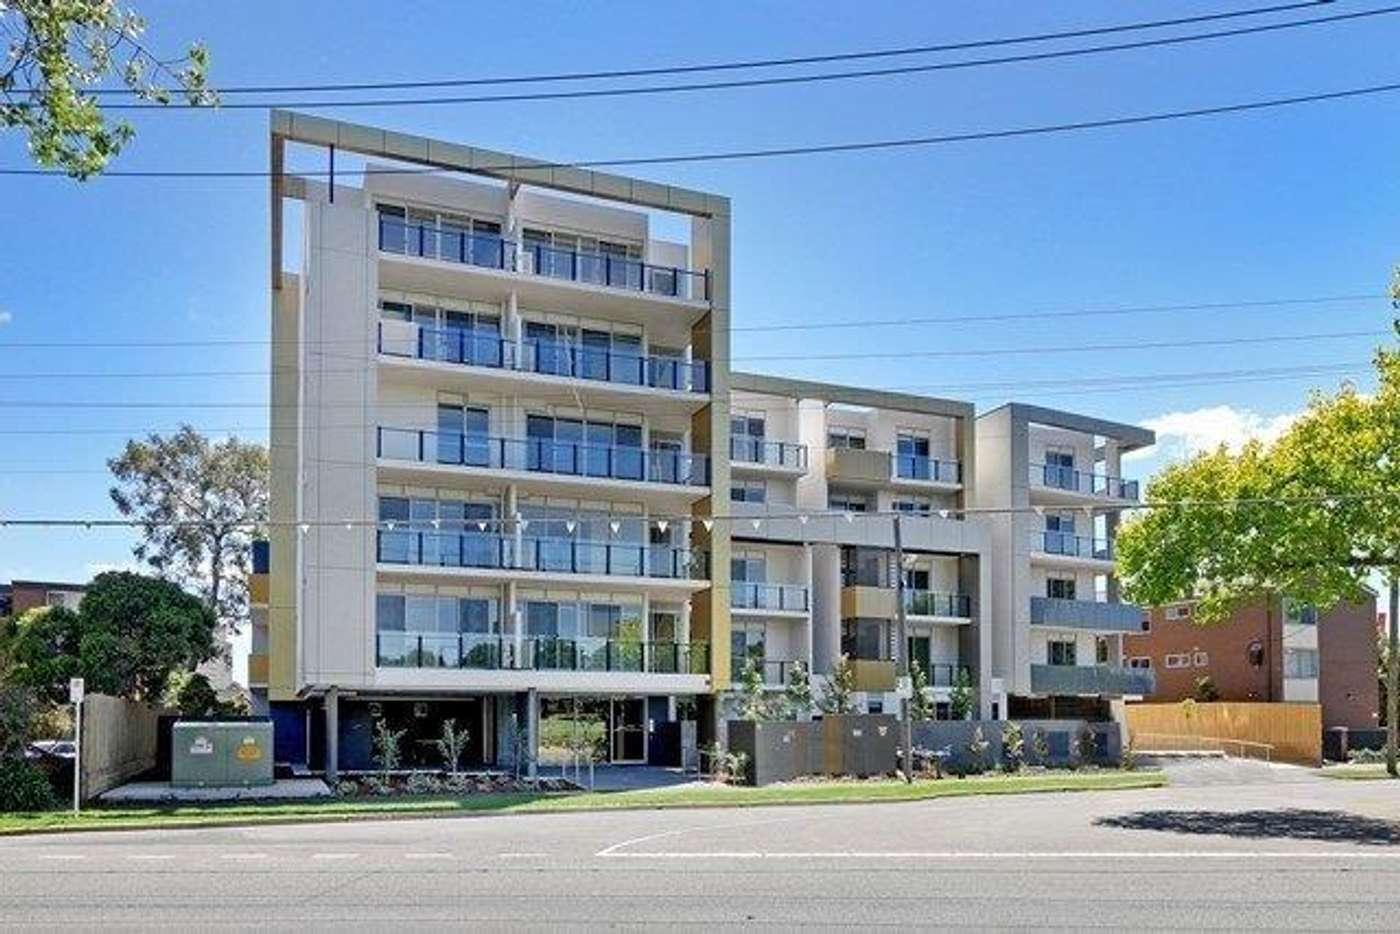 Main view of Homely apartment listing, 412/109 Manningham Street, Parkville VIC 3052